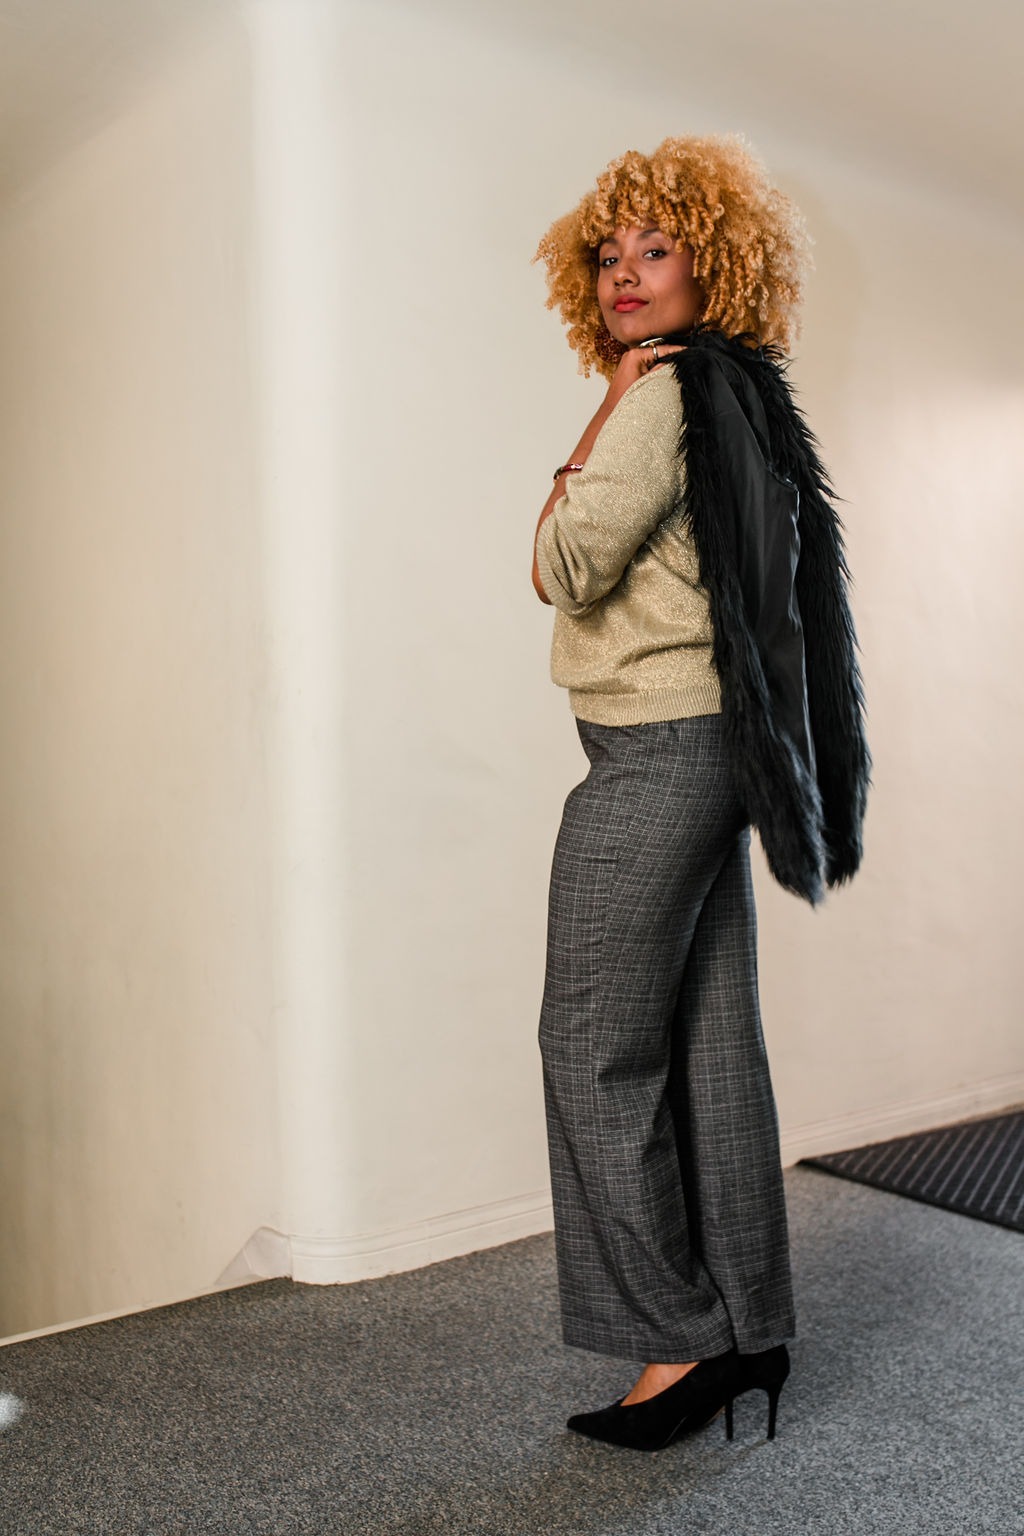 reflect -RSEE-LCM-Liveclothesminded-xmmtt-longbeach-2223-wear who you are-slacks-gold sweater-blonde curls-how to wear slacks-7 big moments- faux fur vest